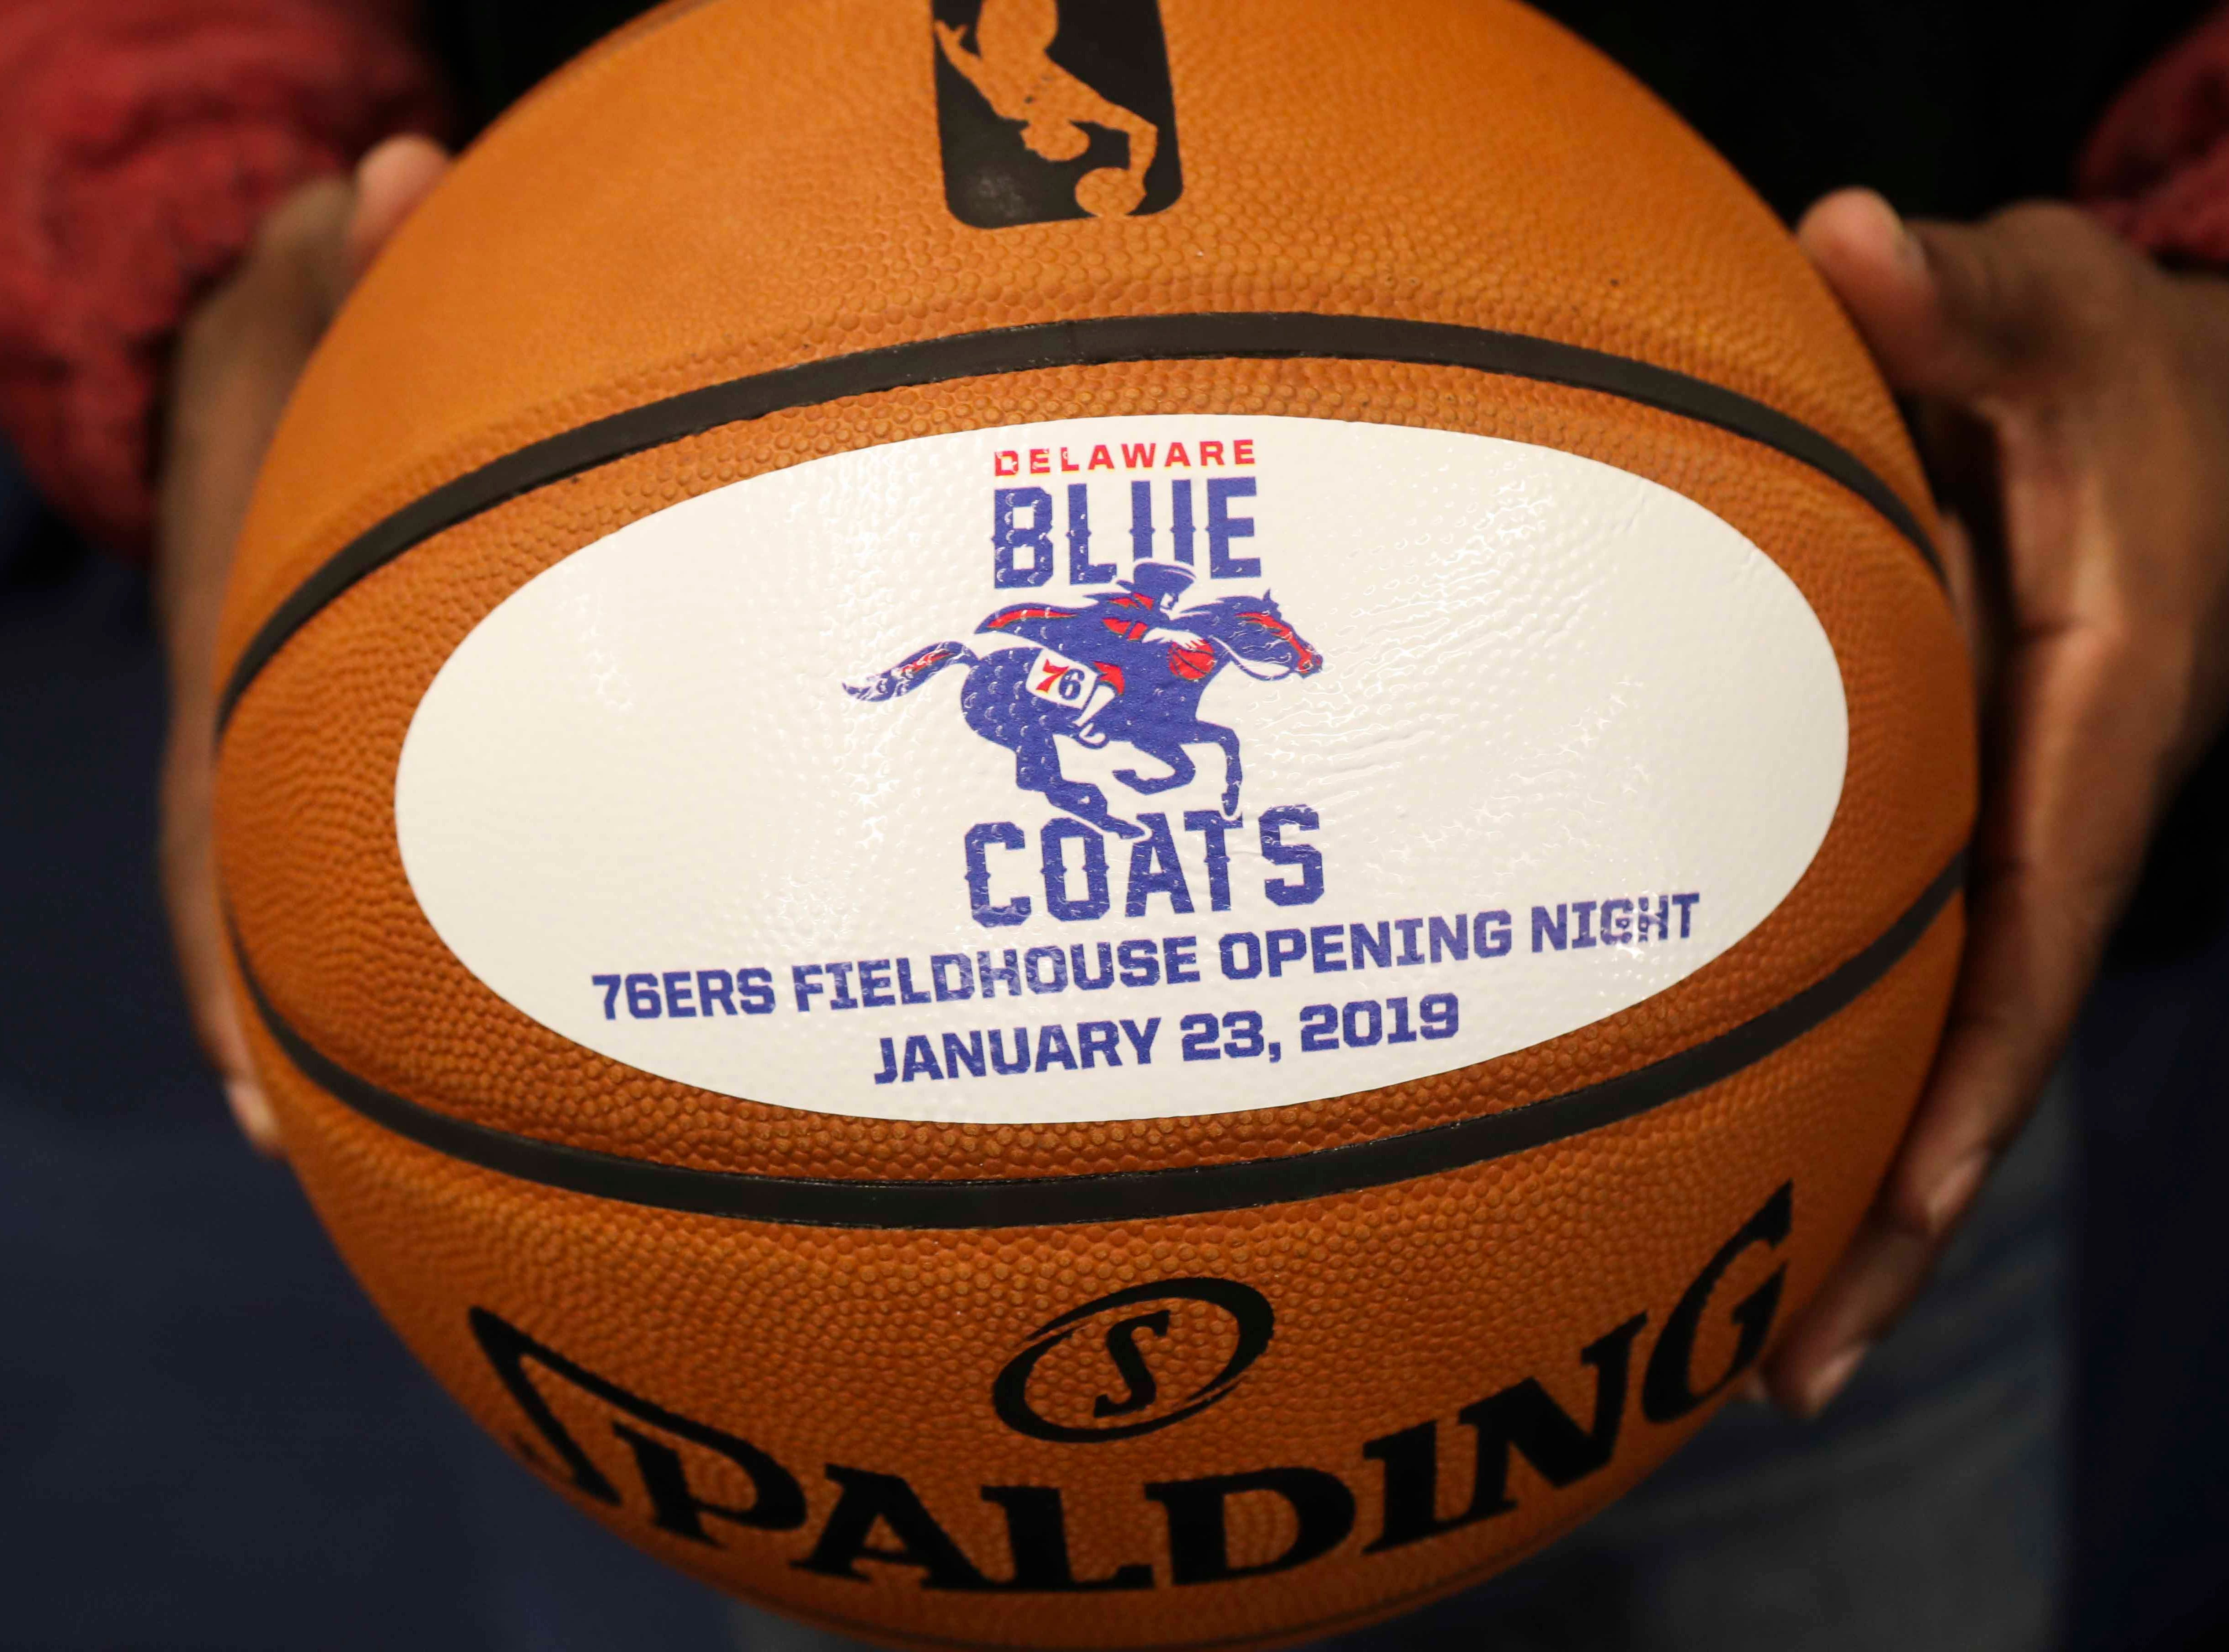 """Stormin'"" Norman Oliver holds a commemorative basketball as the Delaware Blue Coats of the NBA G-League open the 76ers Field House in Wilmington Wednesday."